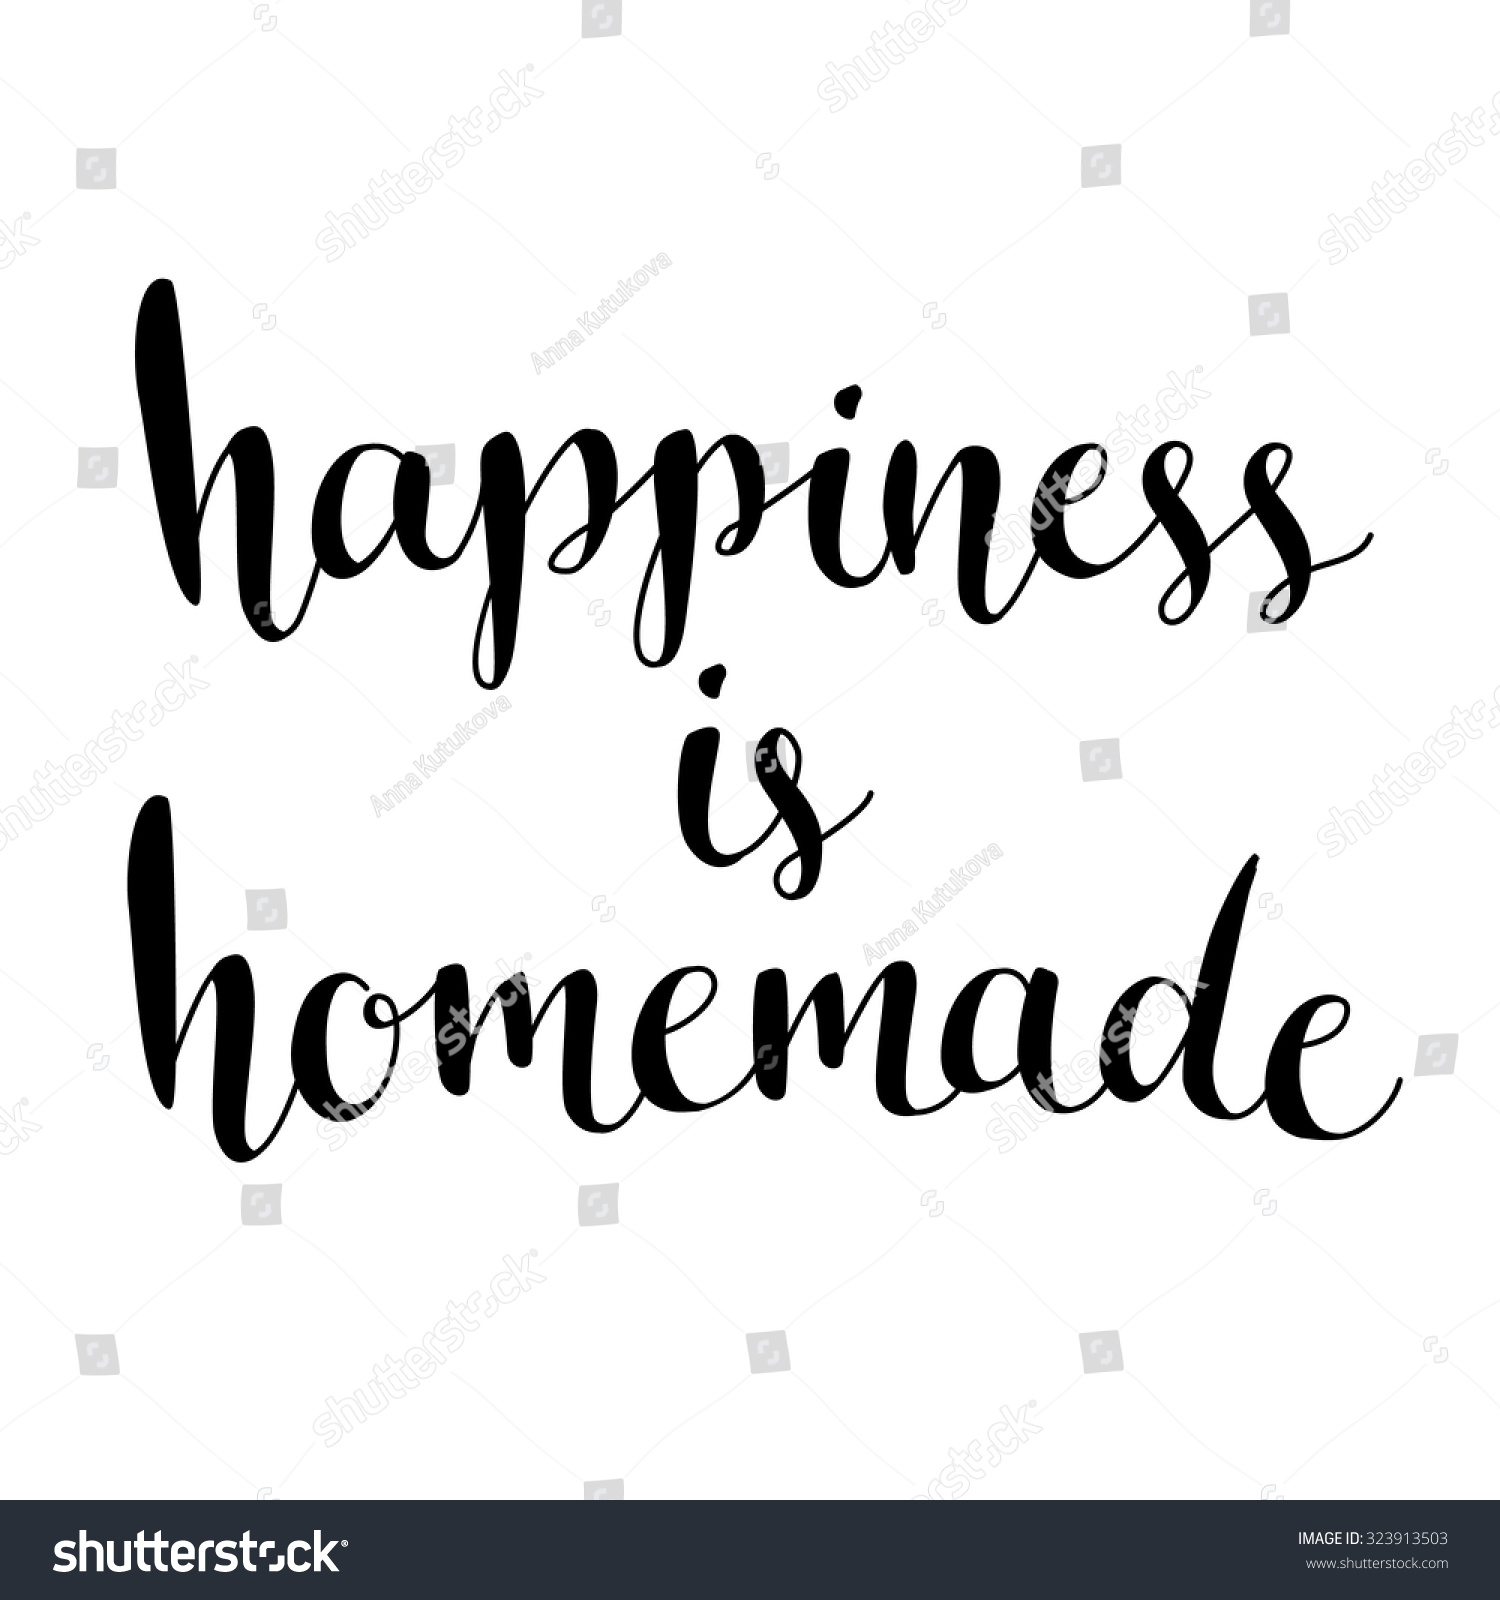 Happiness homemade inspirational quote about life stock